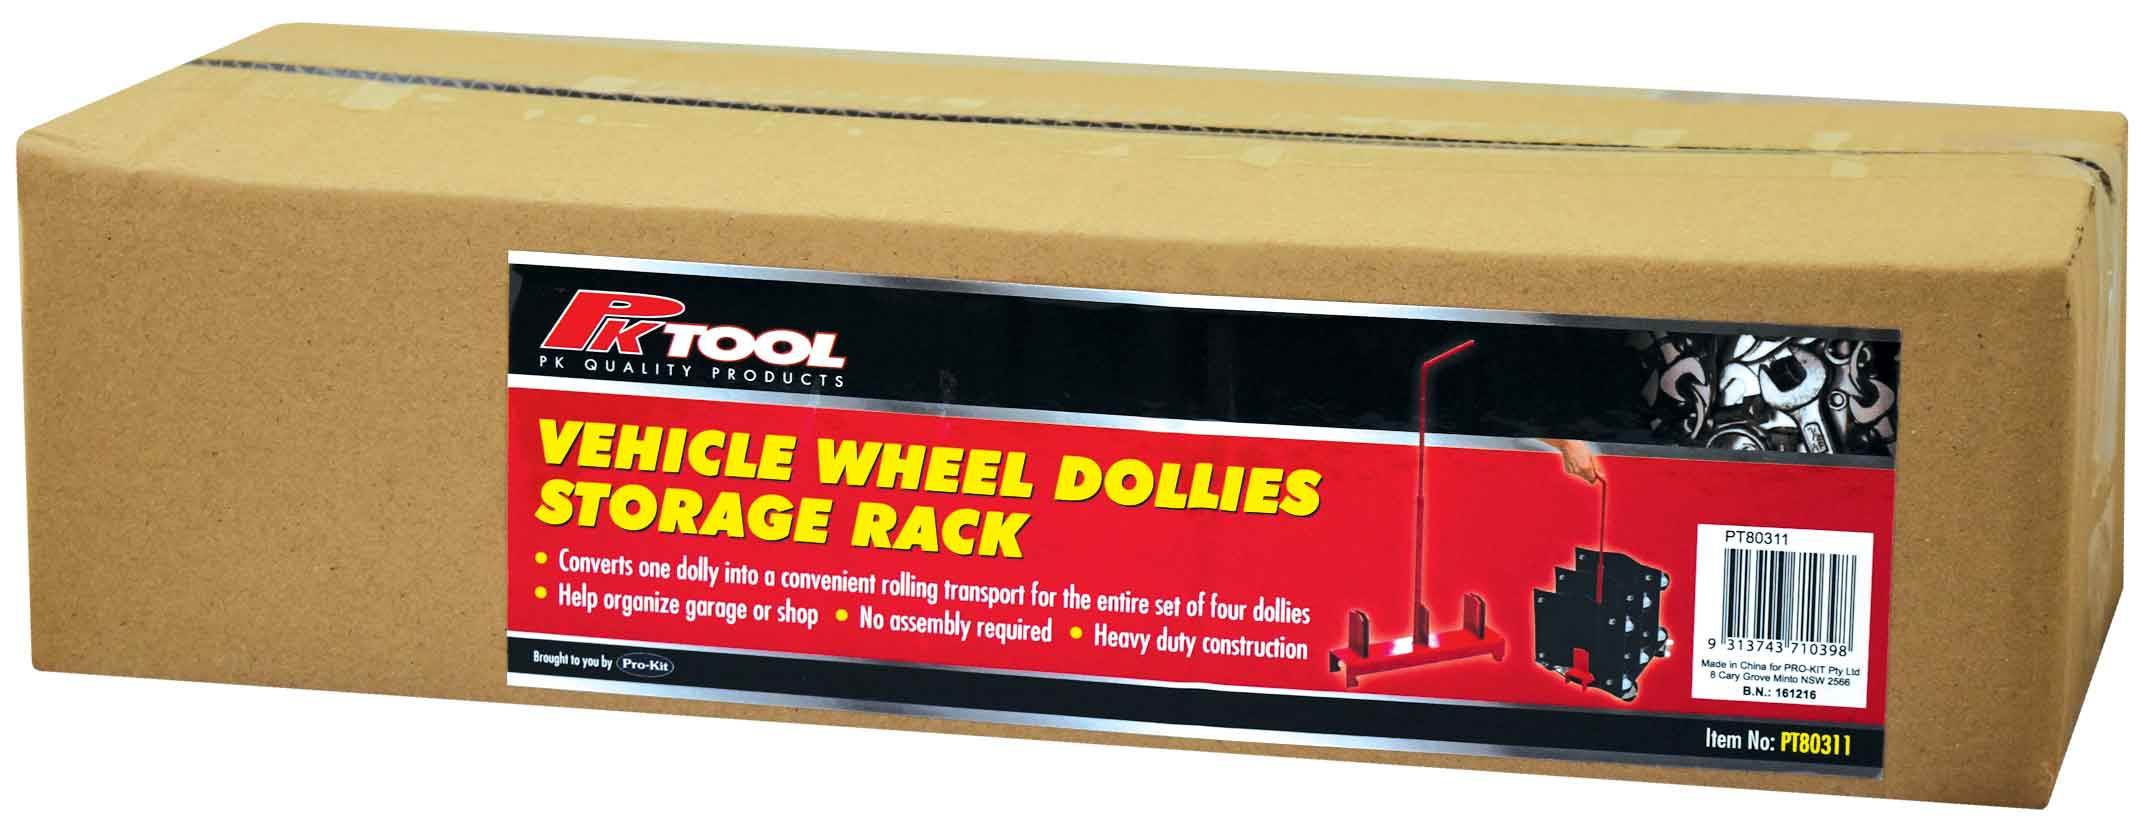 PT80311 Vehicle Wheel Dollies Strorage/Transport Rack image 4